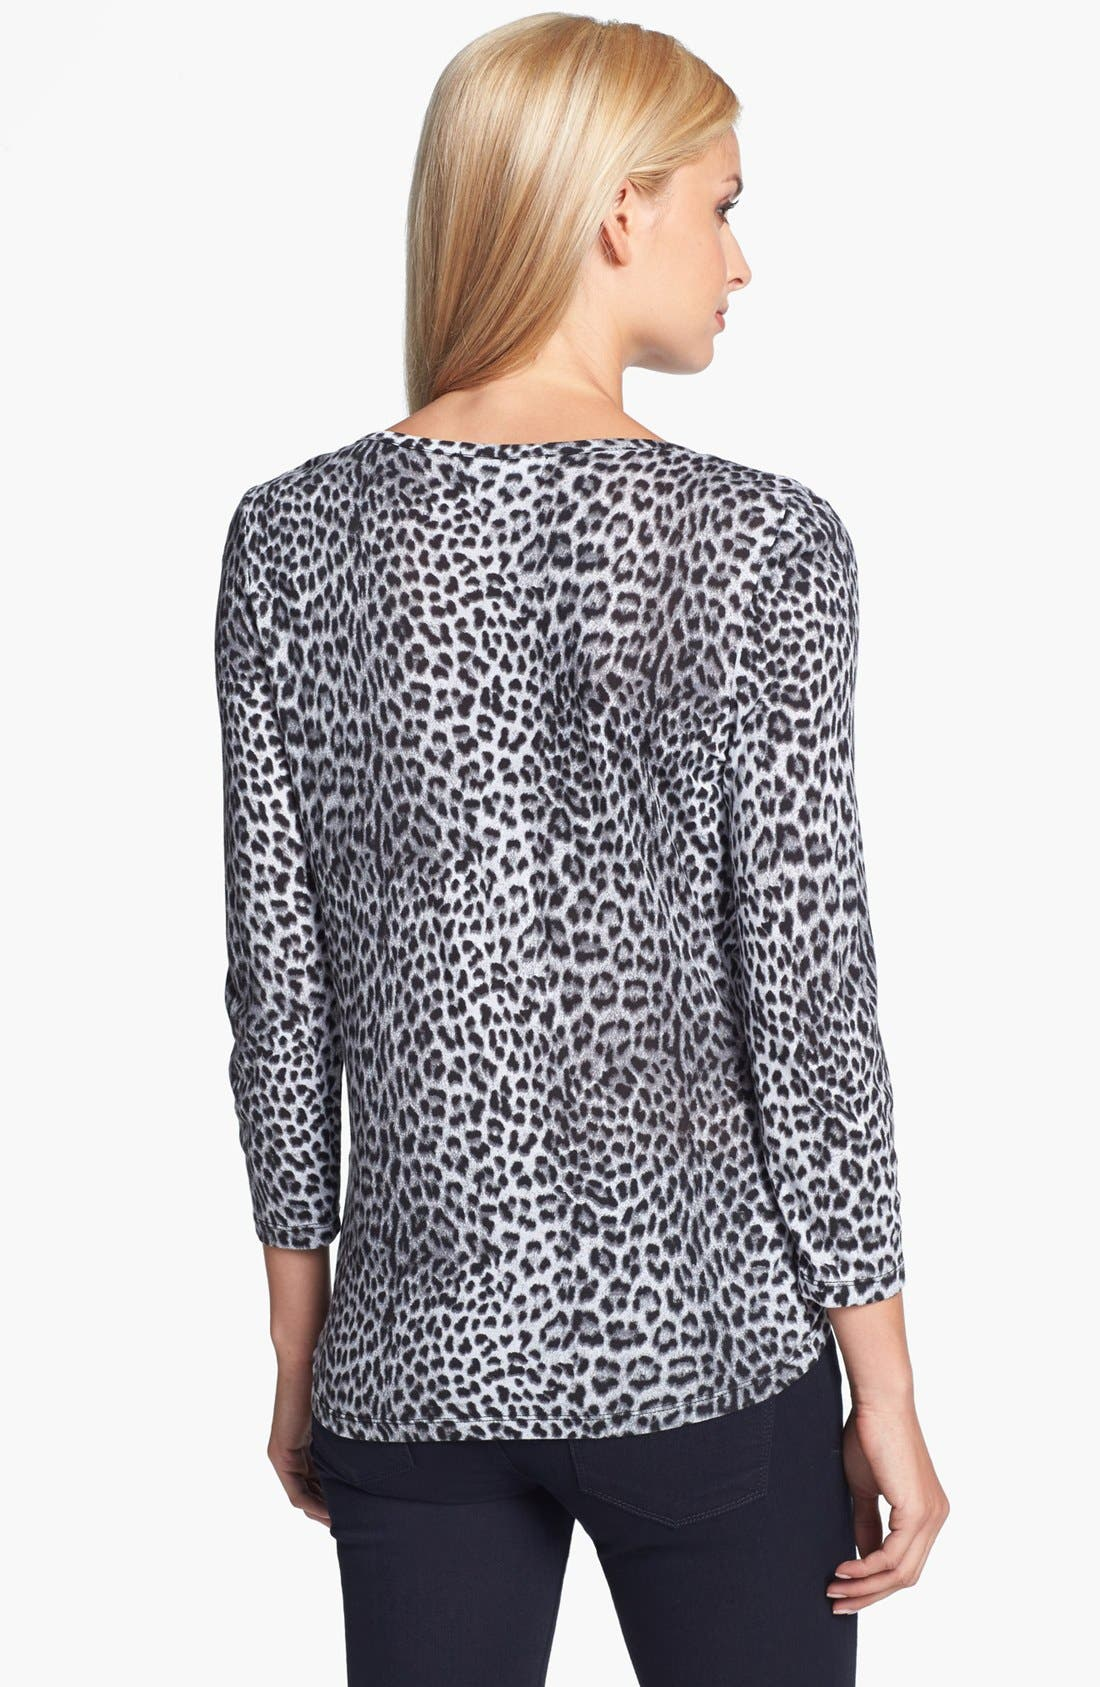 Alternate Image 2  - MICHAEL Michael Kors Leopard Print Drape Neck Top (Regular & Petite)